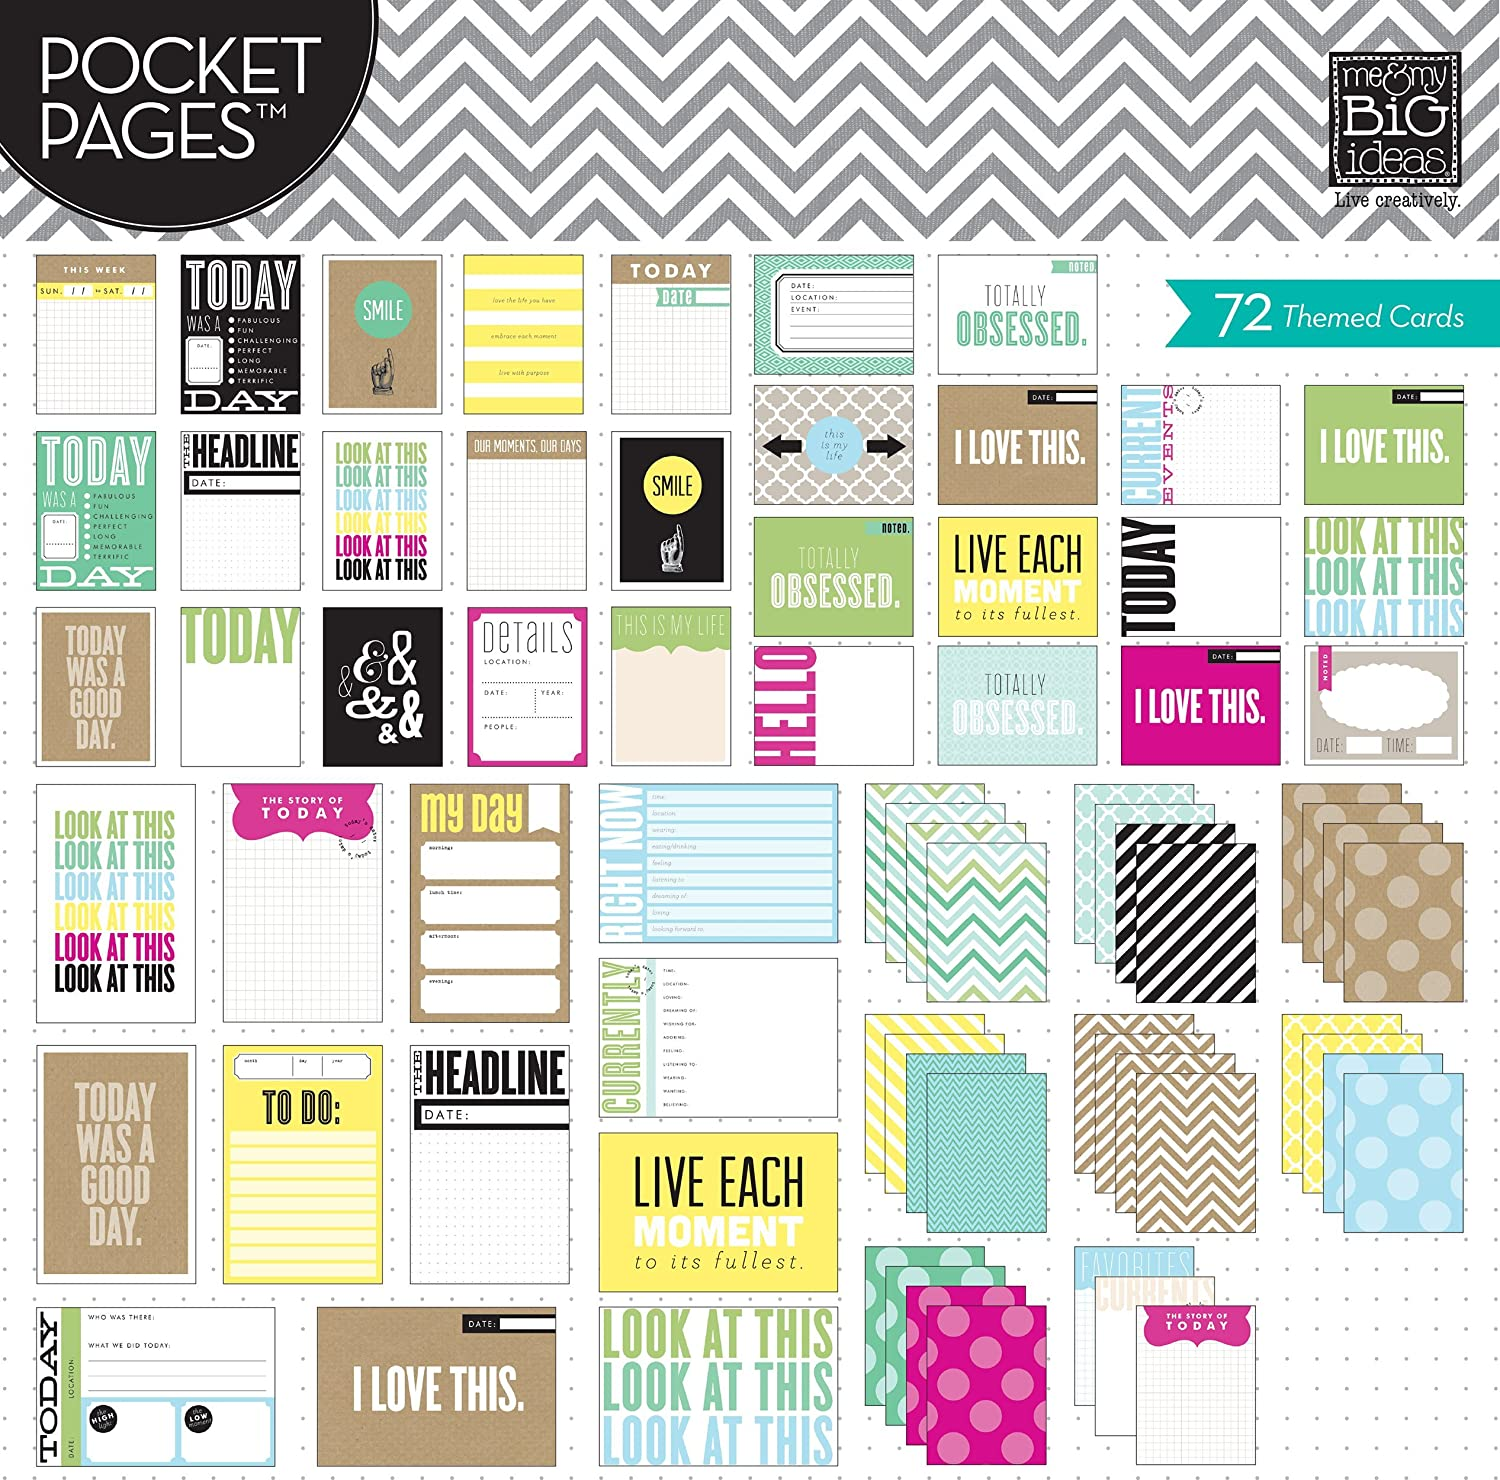 Today me /& my BIG ideas Pocket Pages Journaling Cards